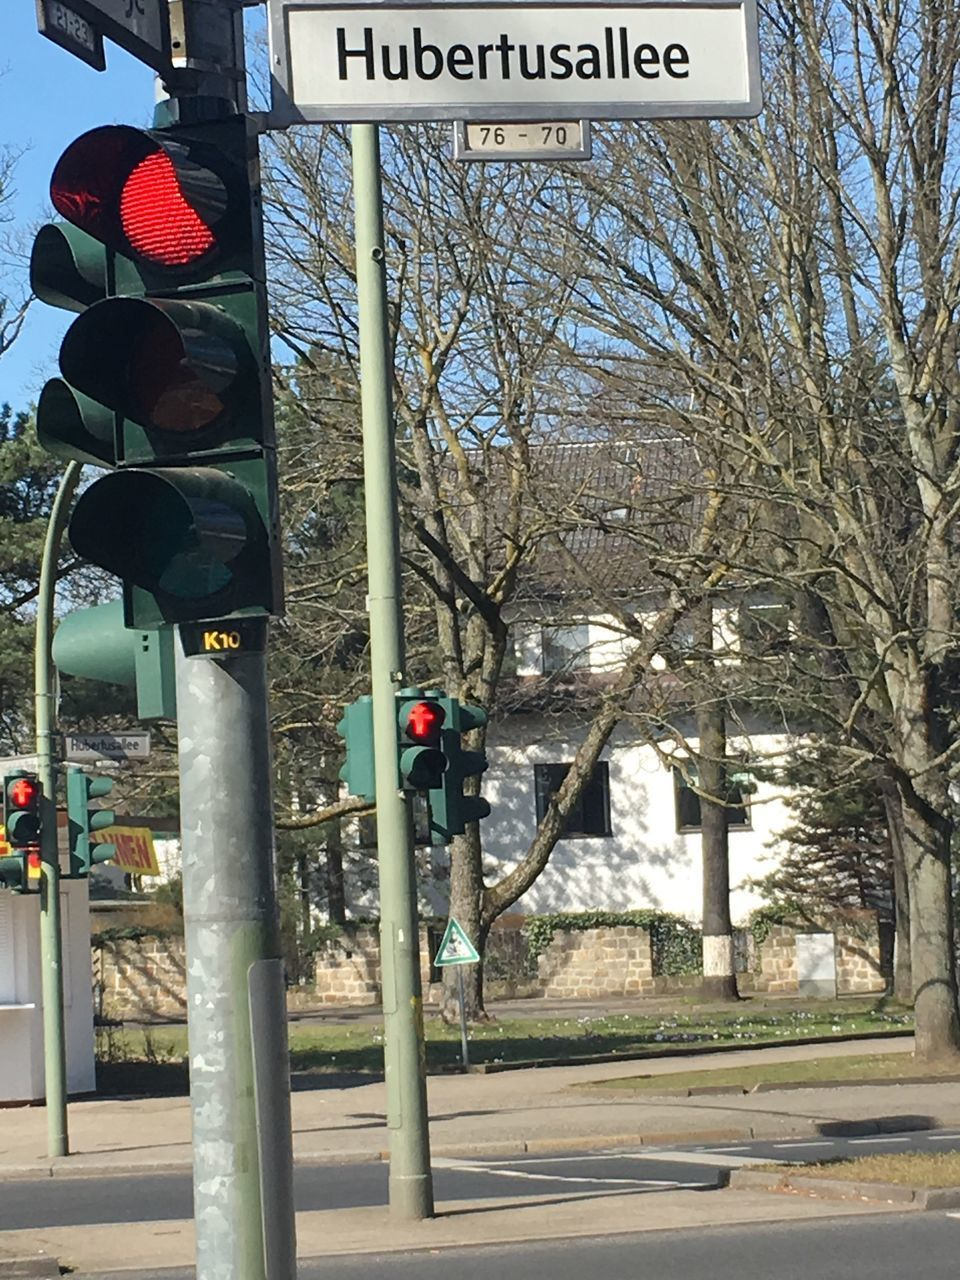 communication, road sign, text, guidance, stoplight, red light, traffic light, traffic signal, day, outdoors, tree, bare tree, street name sign, building exterior, road, no people, signal, architecture, city